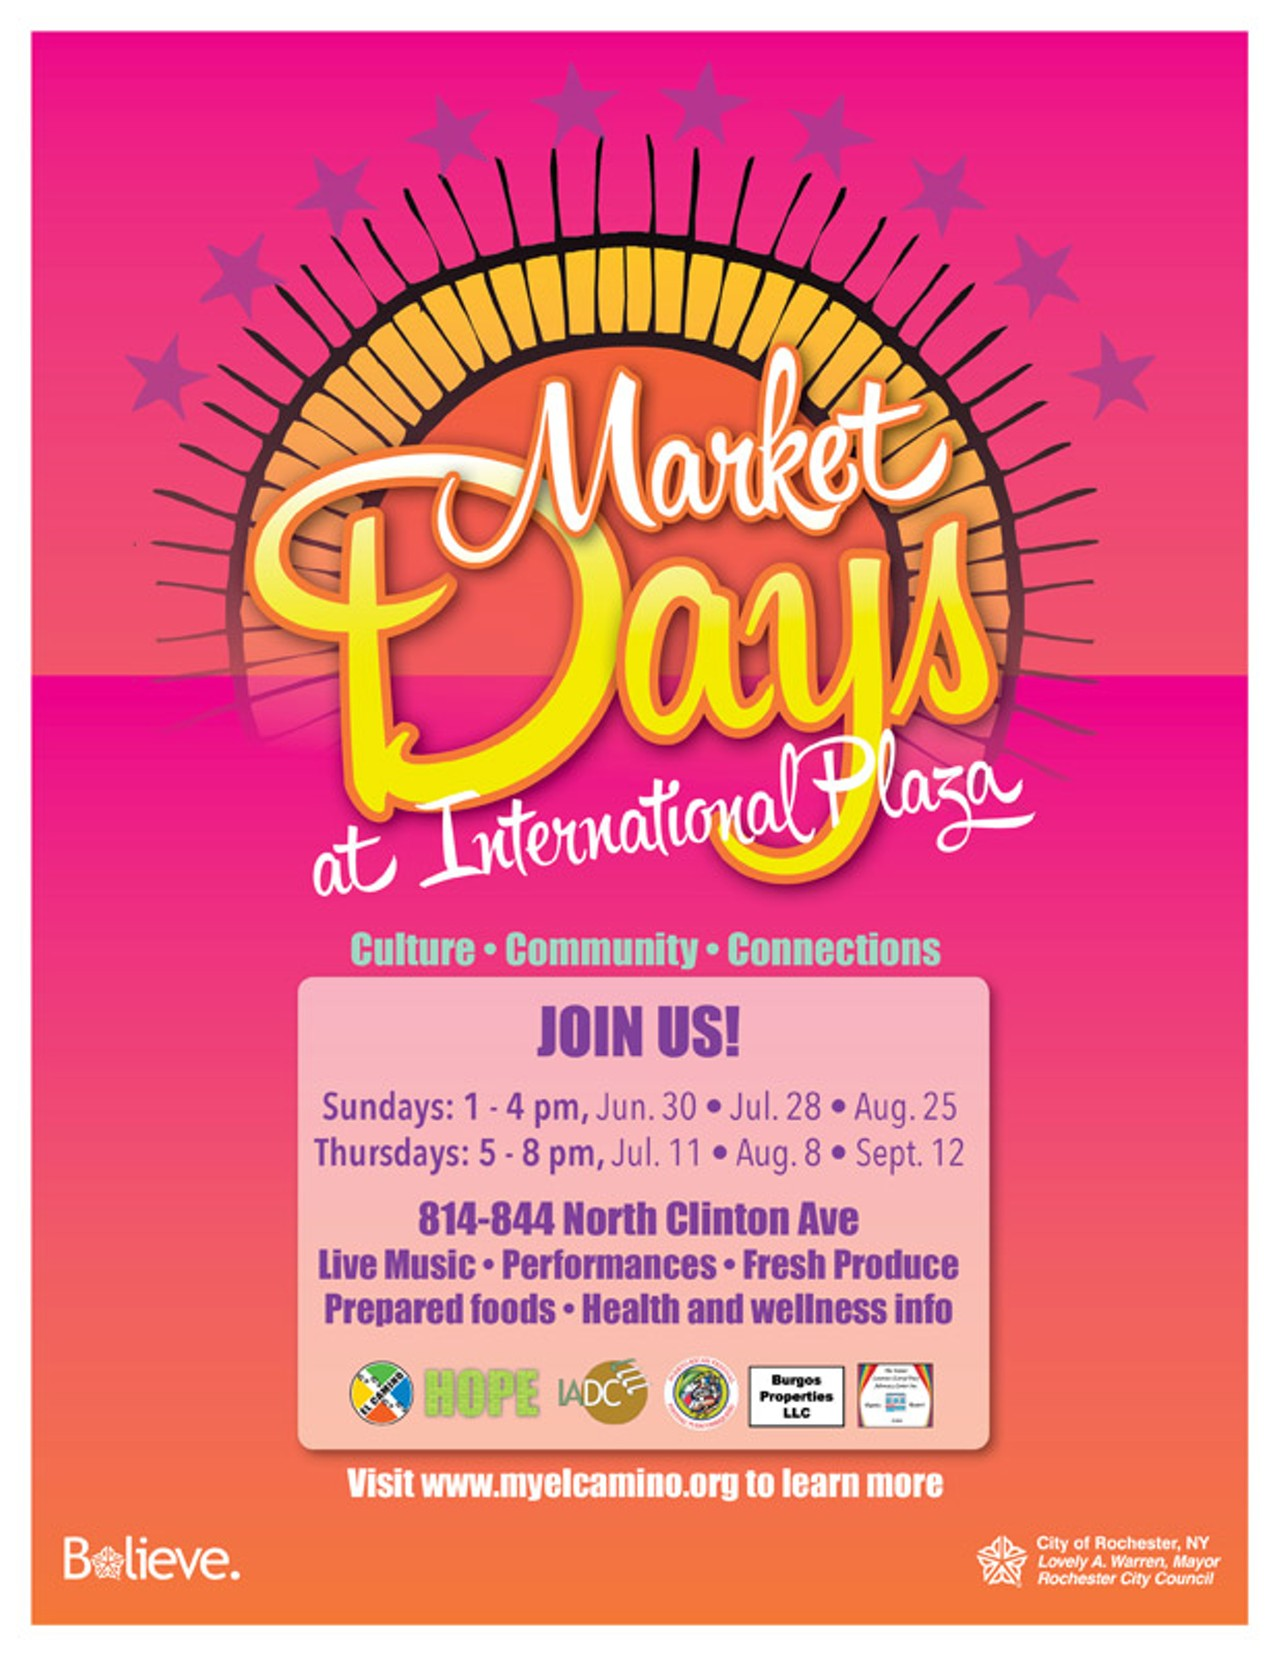 SPECIAL EVENT | Market Days at International Plaza | Choice